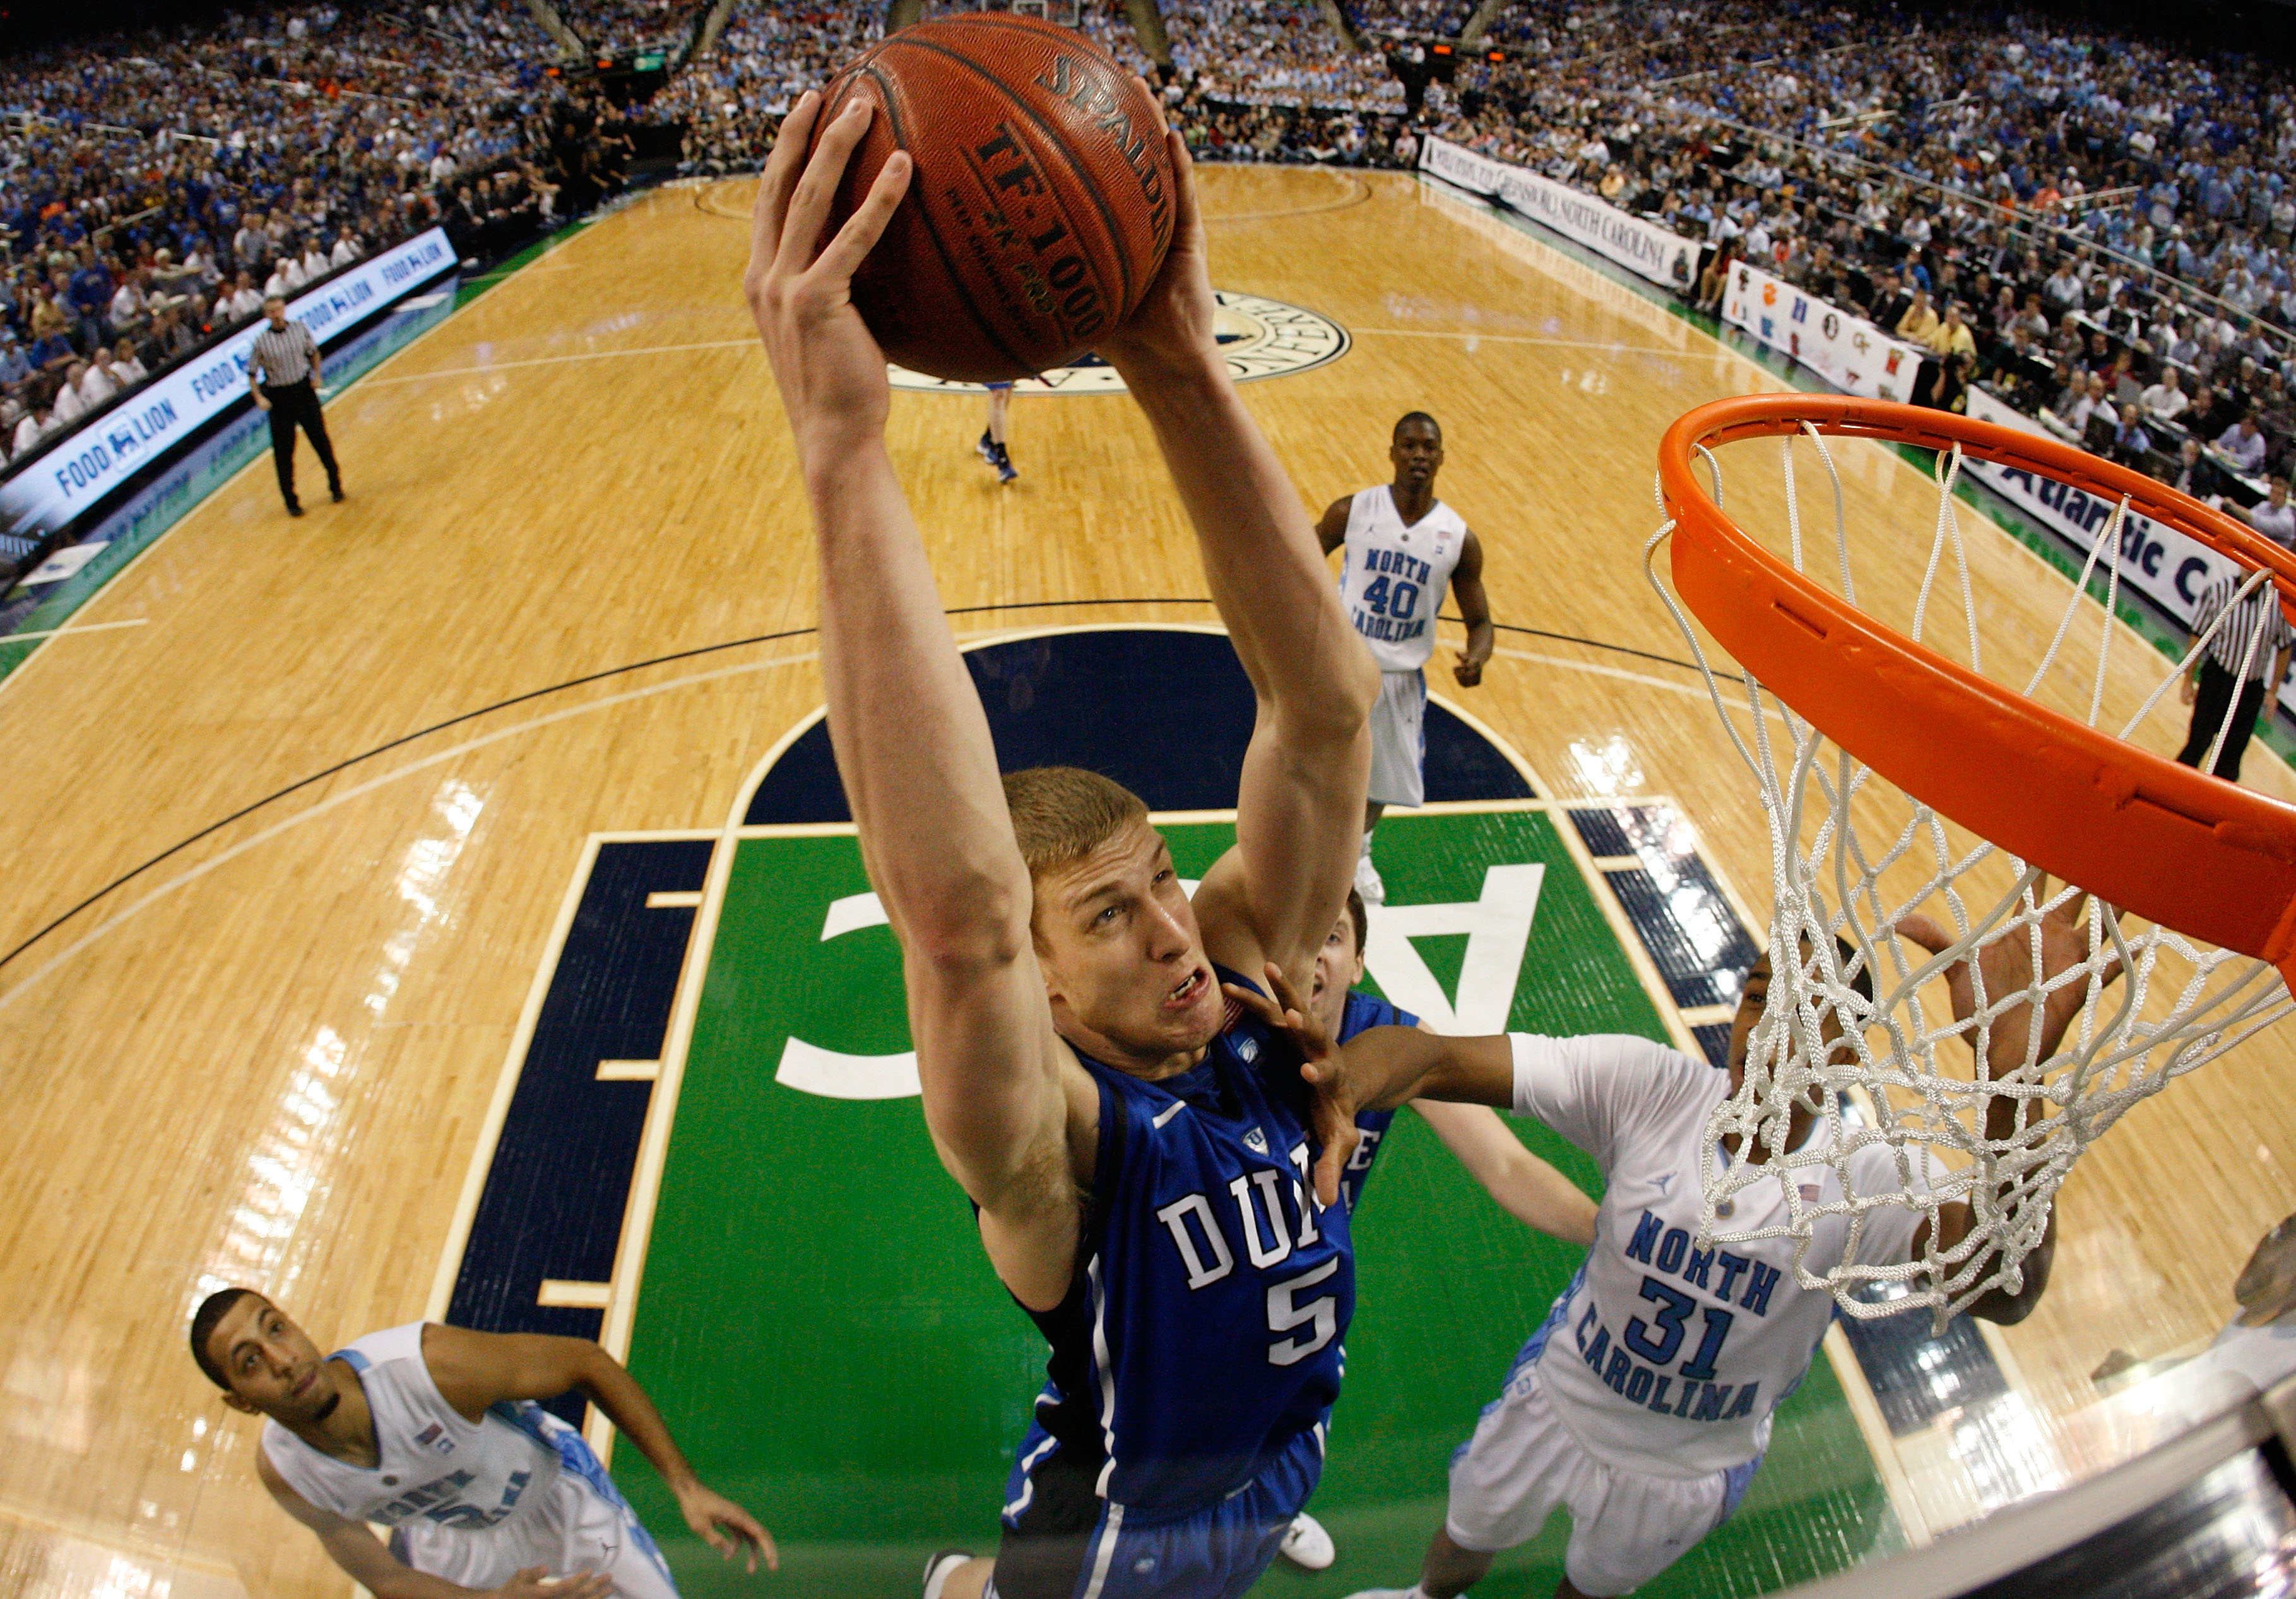 GREENSBORO, NC - MARCH 13:  Mason Plumlee #5 of the Duke Blue Devils shoots against John Henson #31 of the North Carolina Tar Heels in the championship game of the 2011 ACC men's basketball tournament at the Greensboro Coliseum on March 13, 2011 in Greens